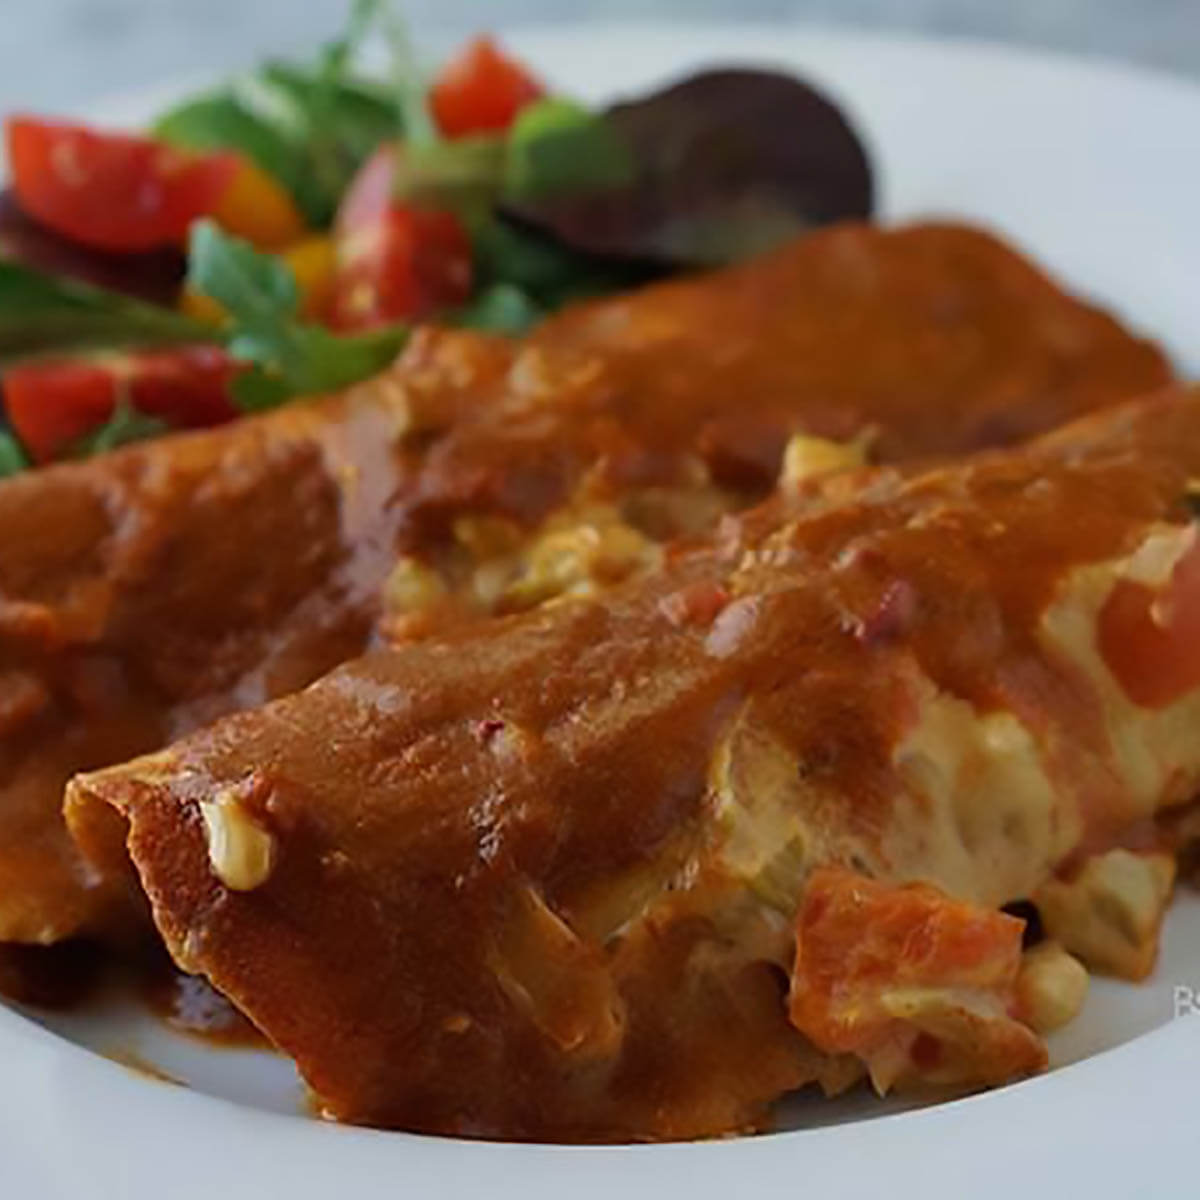 Enchiladas with red sauce on plate with salad.